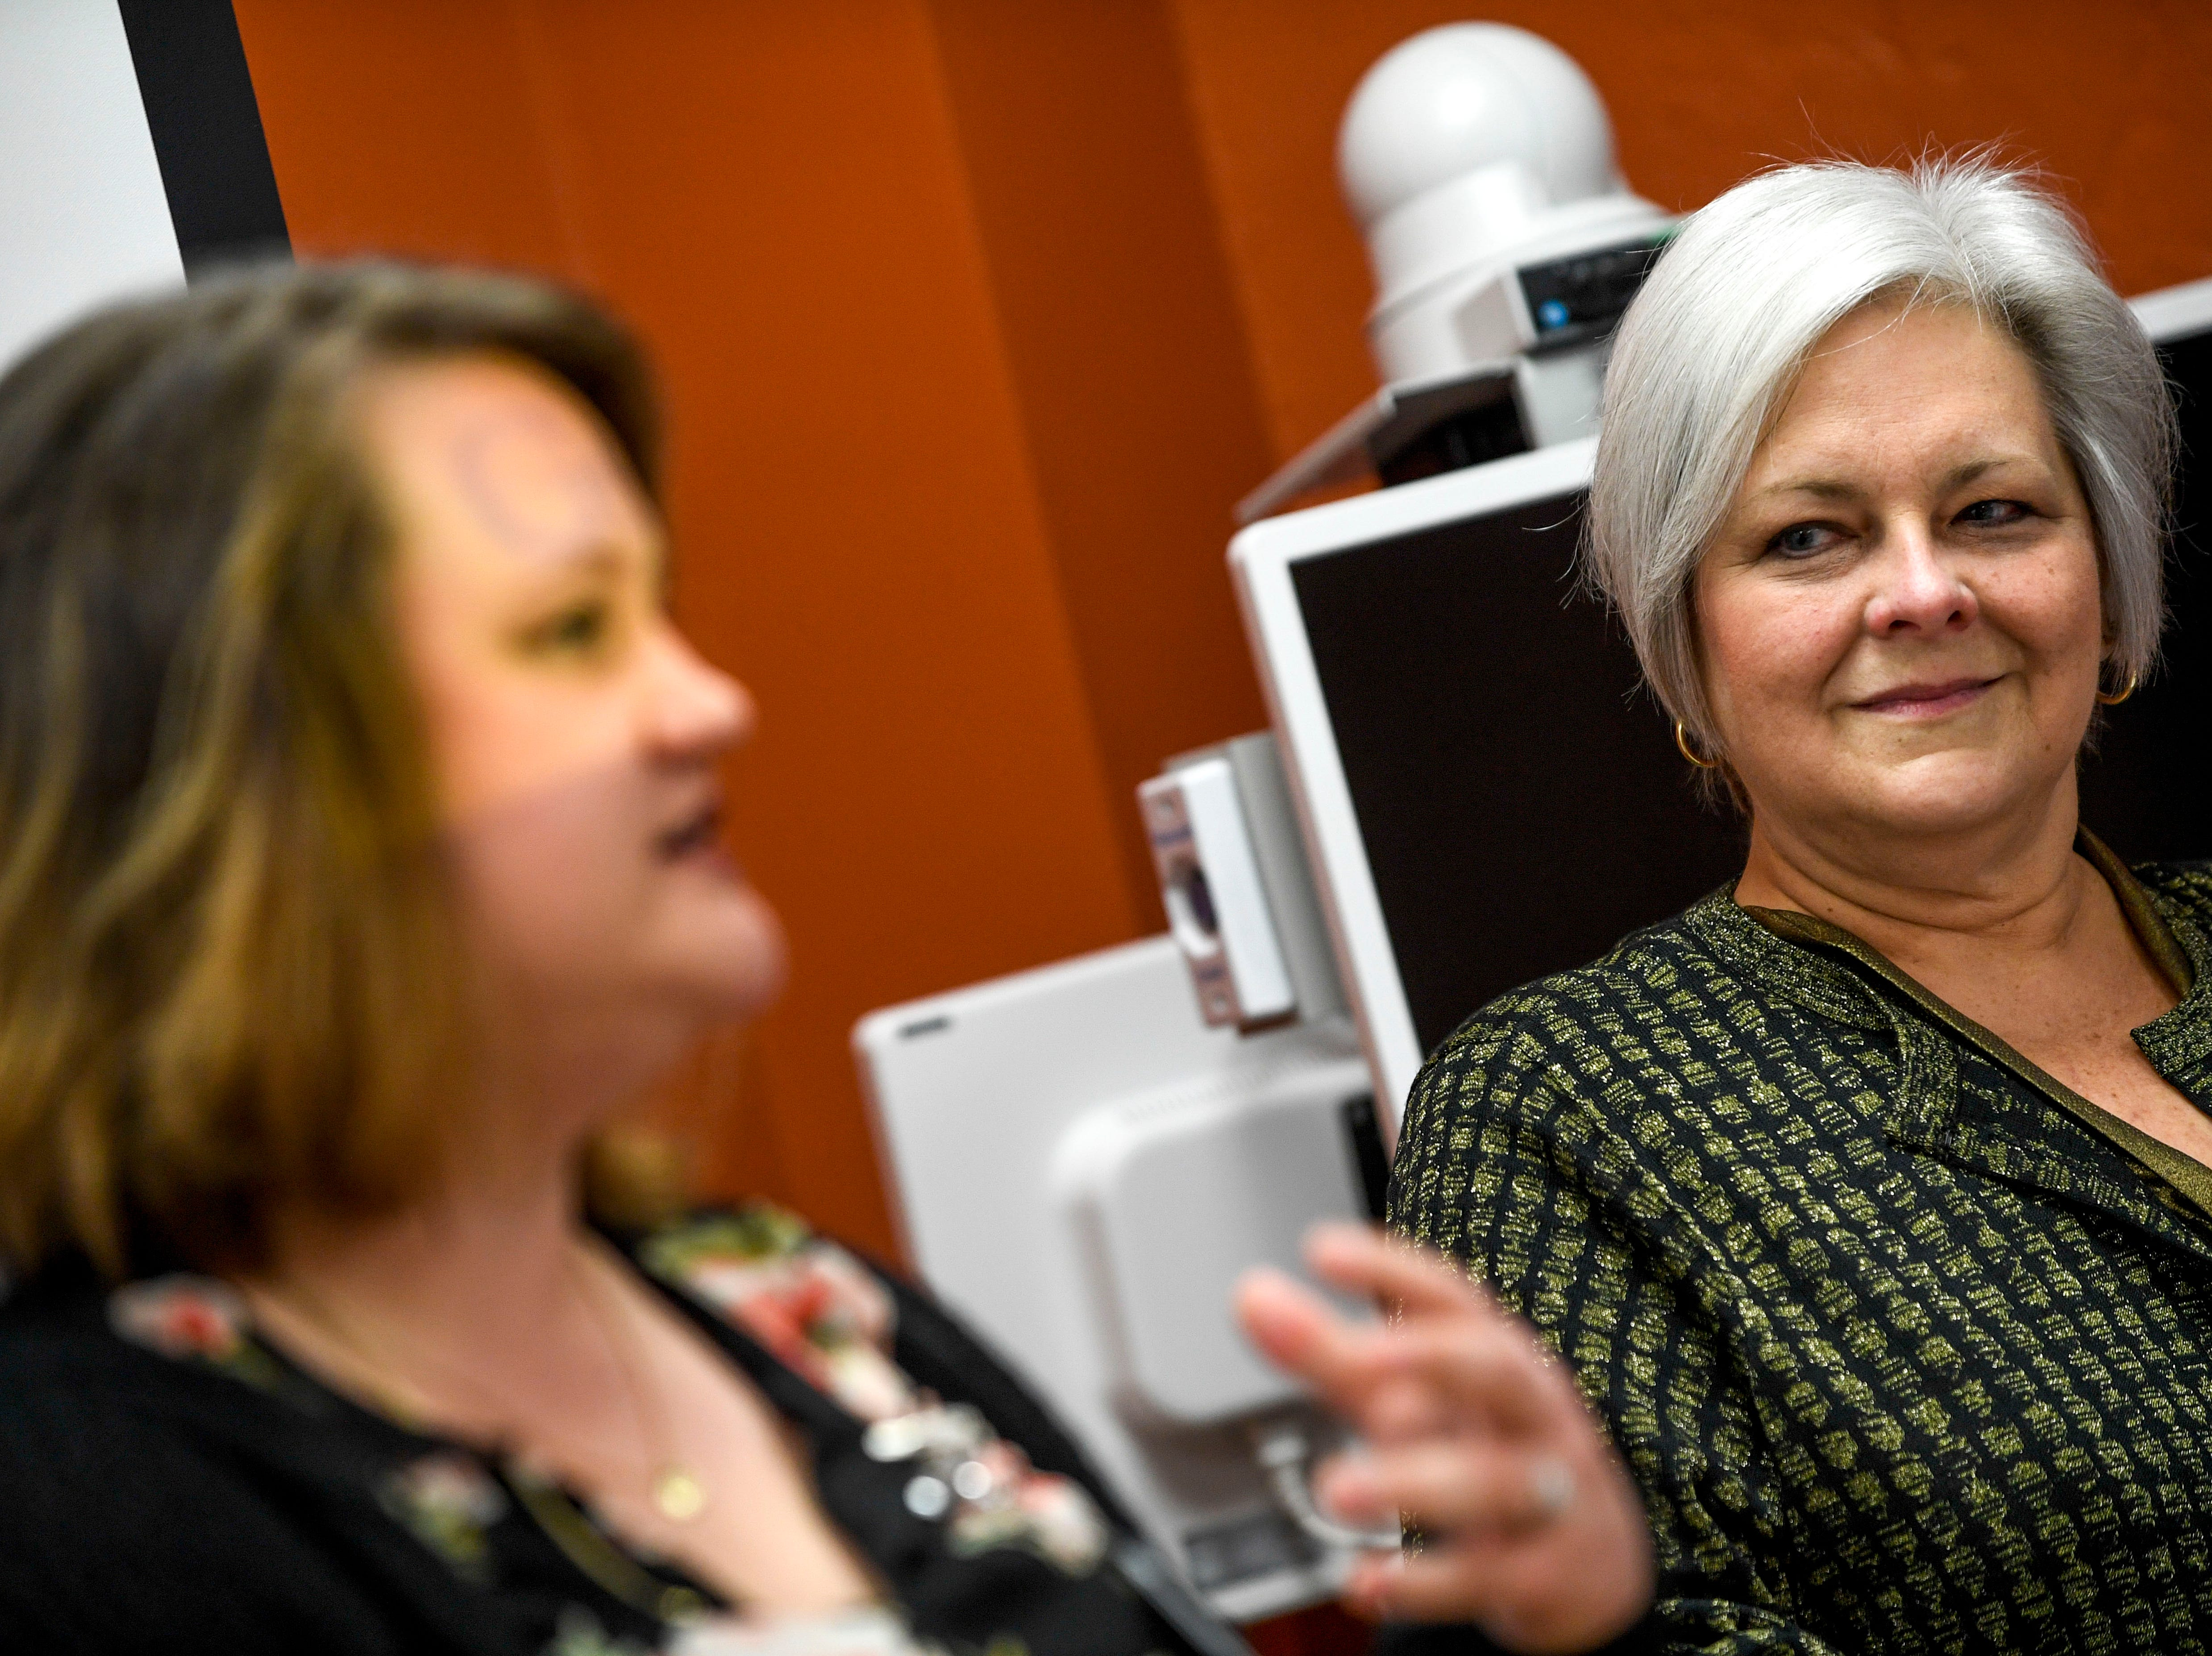 Susan Breeden listens to Joanna Smith, left, present information about a device that can stream a doctor from a remote location to evaluate patients   at Baptist Memorial Hospital in Huntingdon, Tenn., on Friday, Feb. 8, 2019.